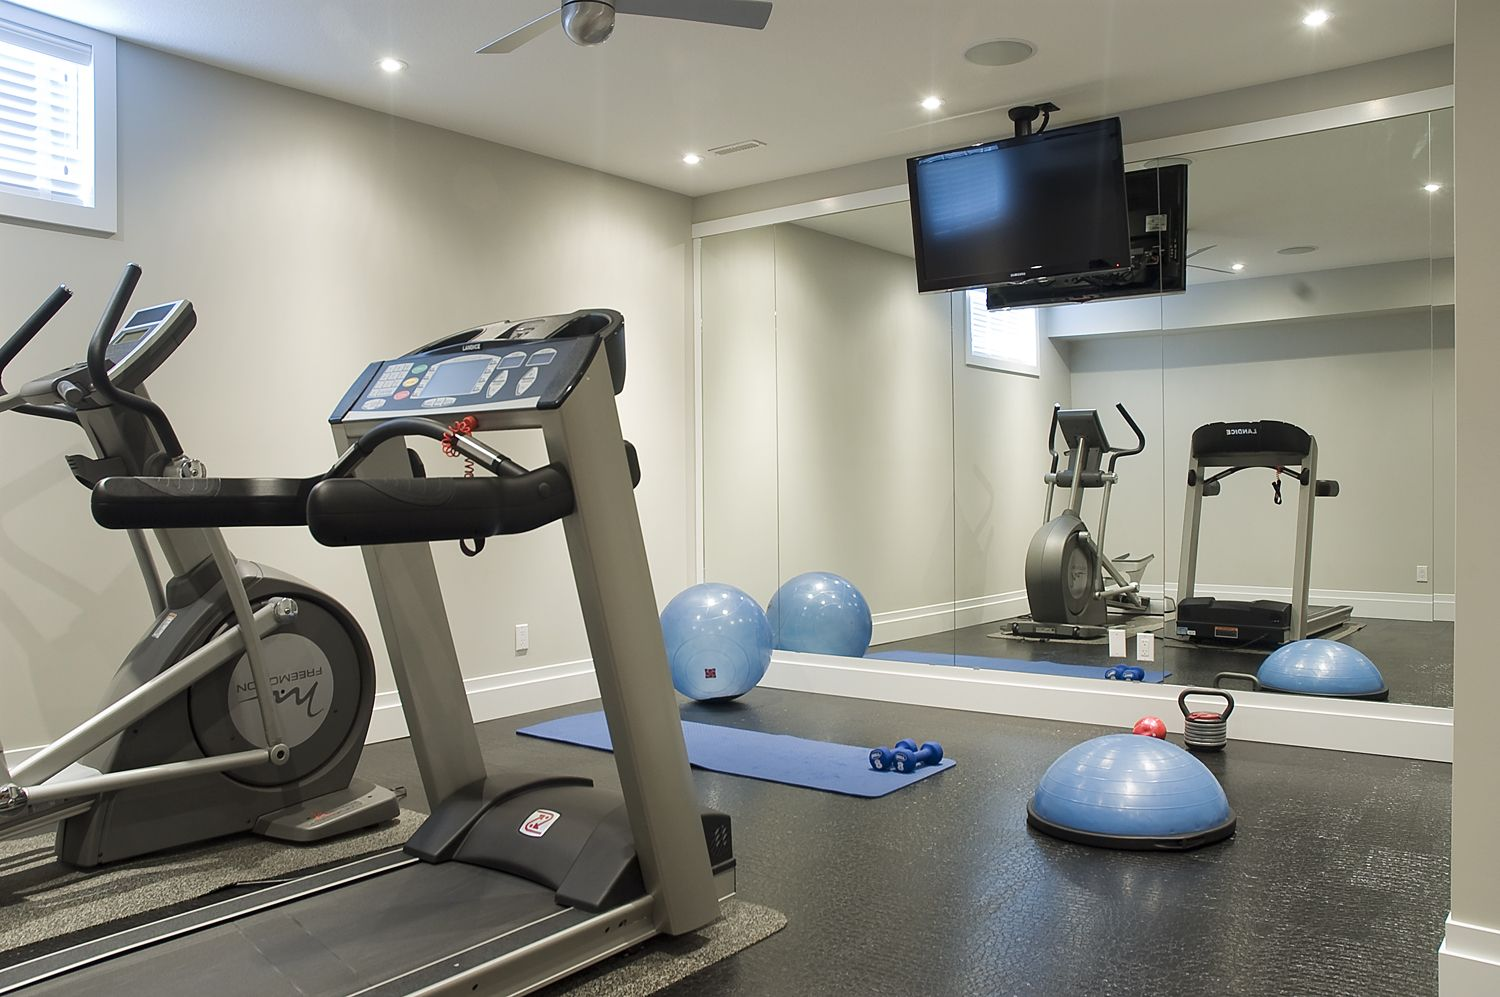 Want A Home Gym? Ask MondialFitClub Experts